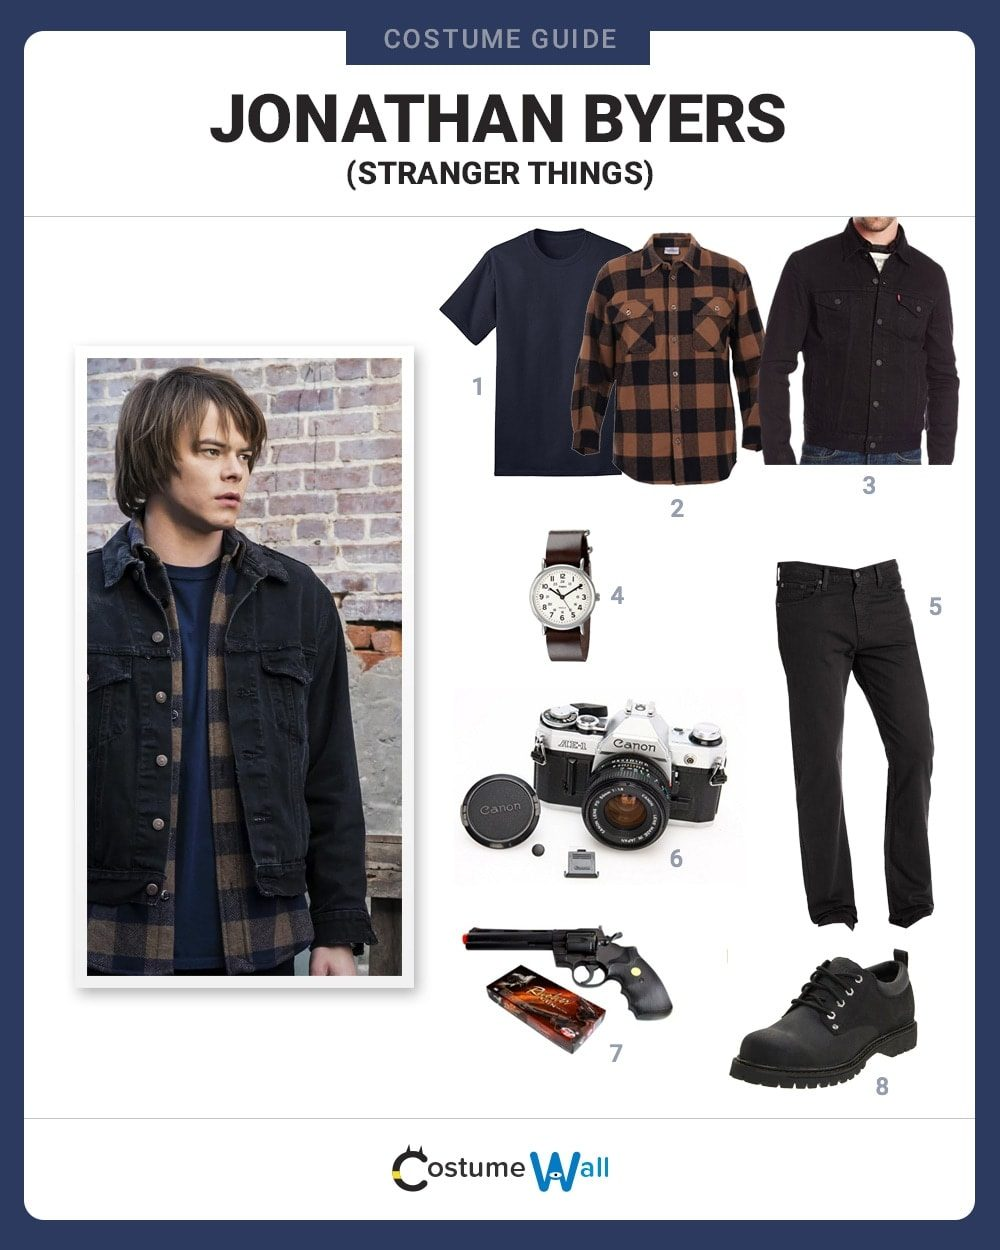 dress like jonathan byers costume  halloween and cosplay